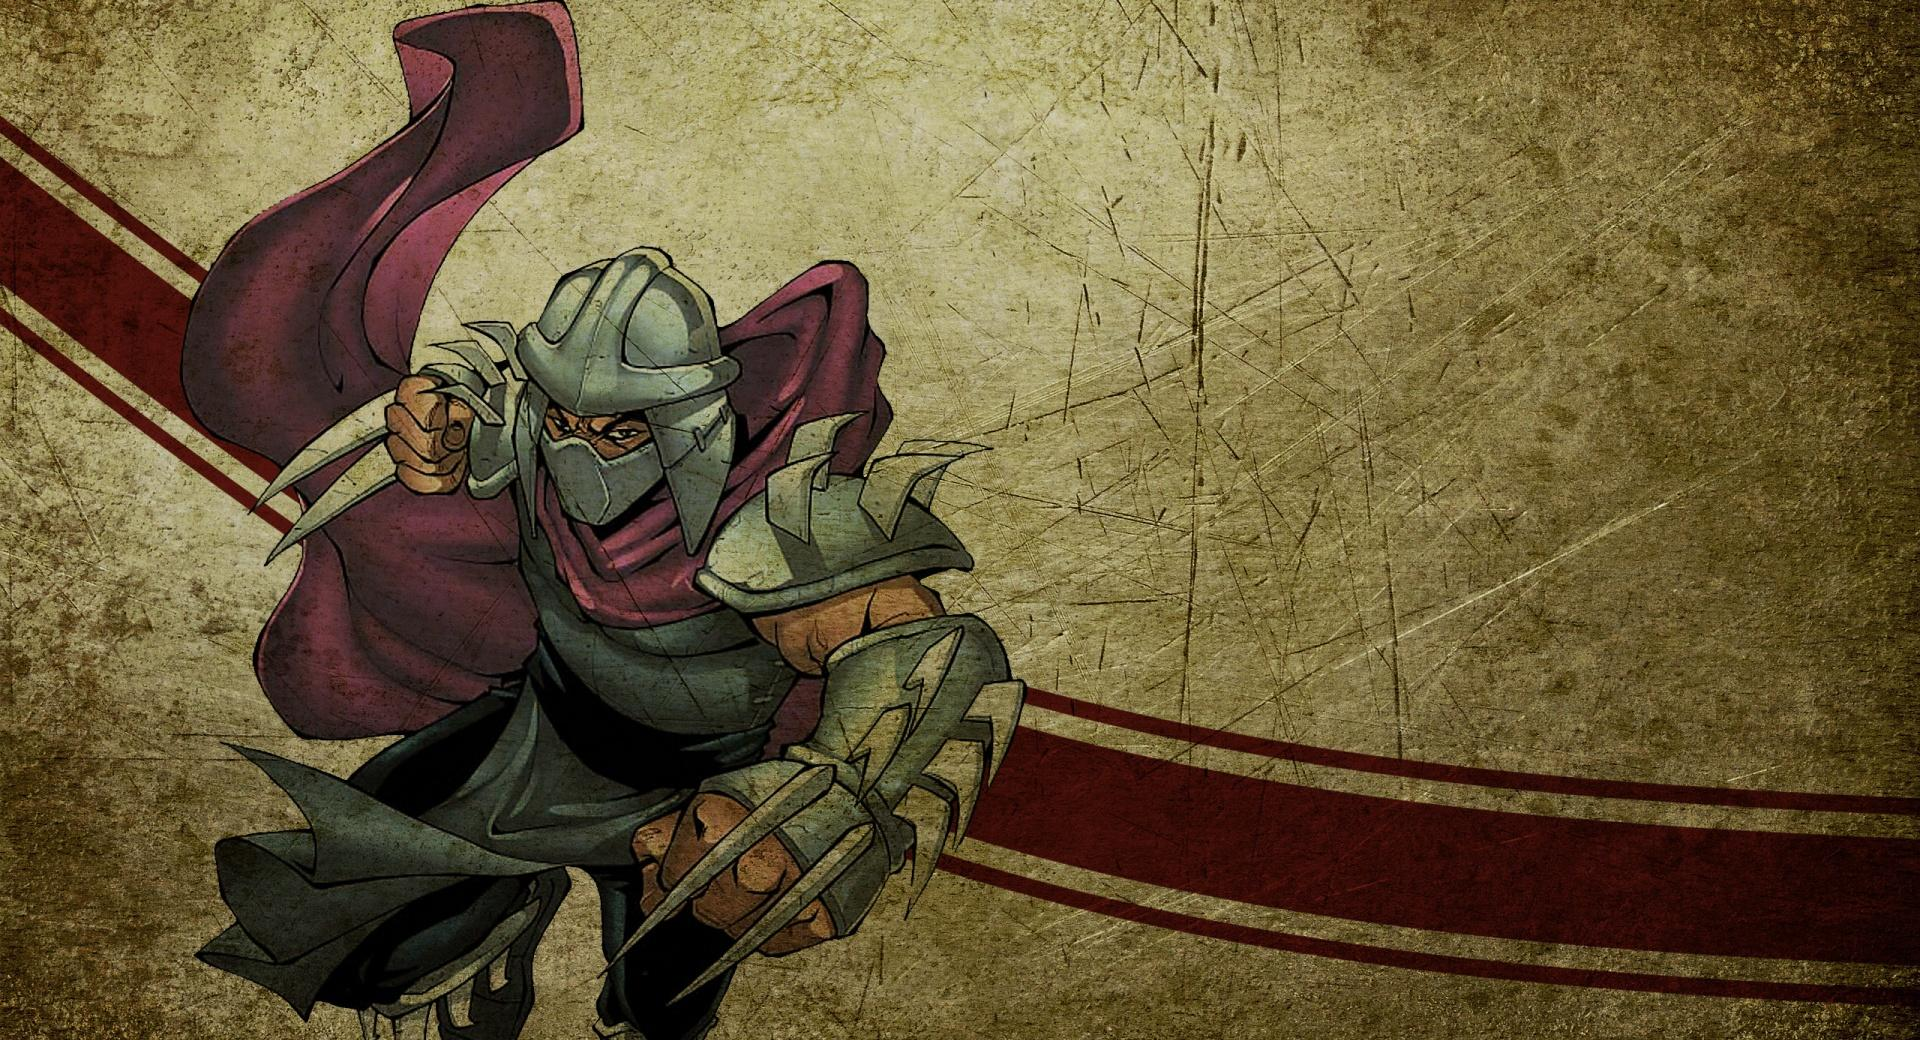 Ninja Turtles Shredder wallpapers HD quality